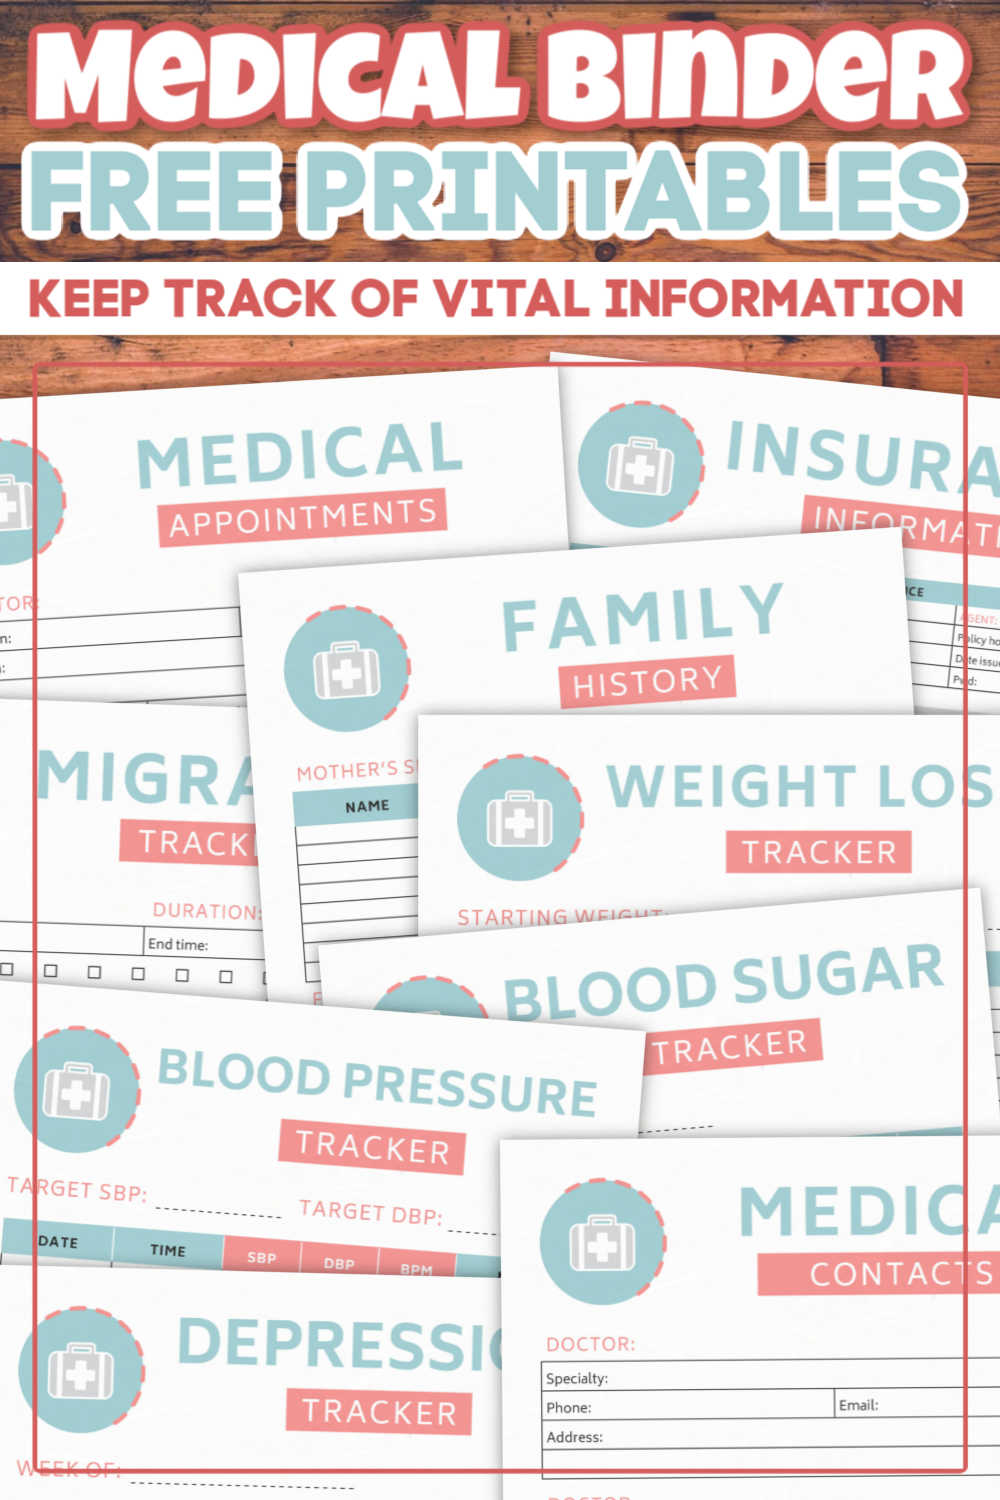 Download this completely free printable medical binder with more than a dozen worksheets that help track everything from symptoms to family history and key medical contacts. #medicalbinder #printables